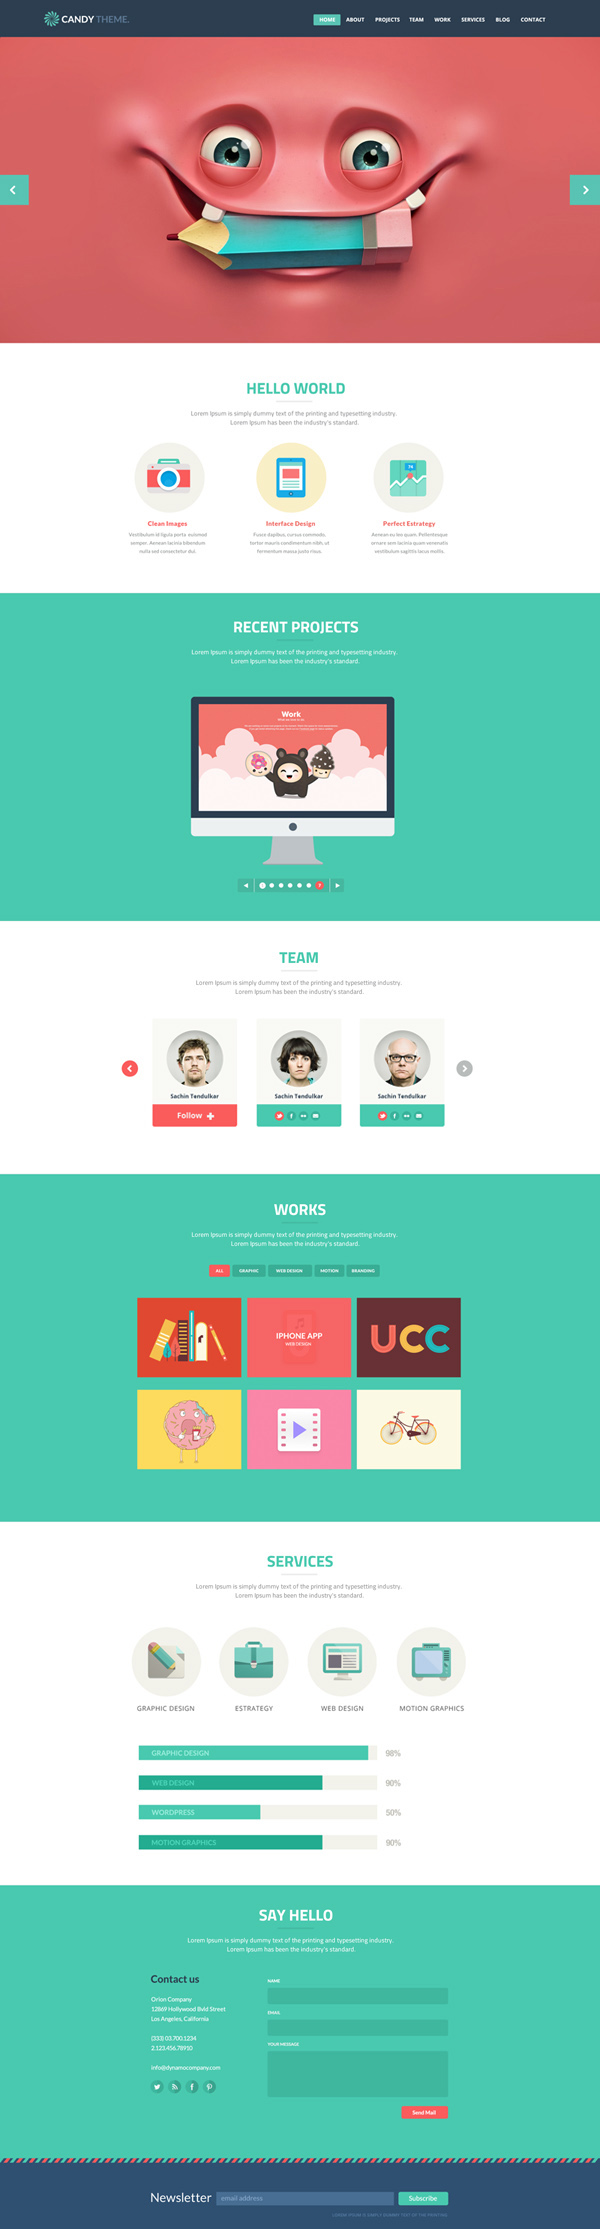 Candy - Flat Onepage Responsive HTML5 Template - 1